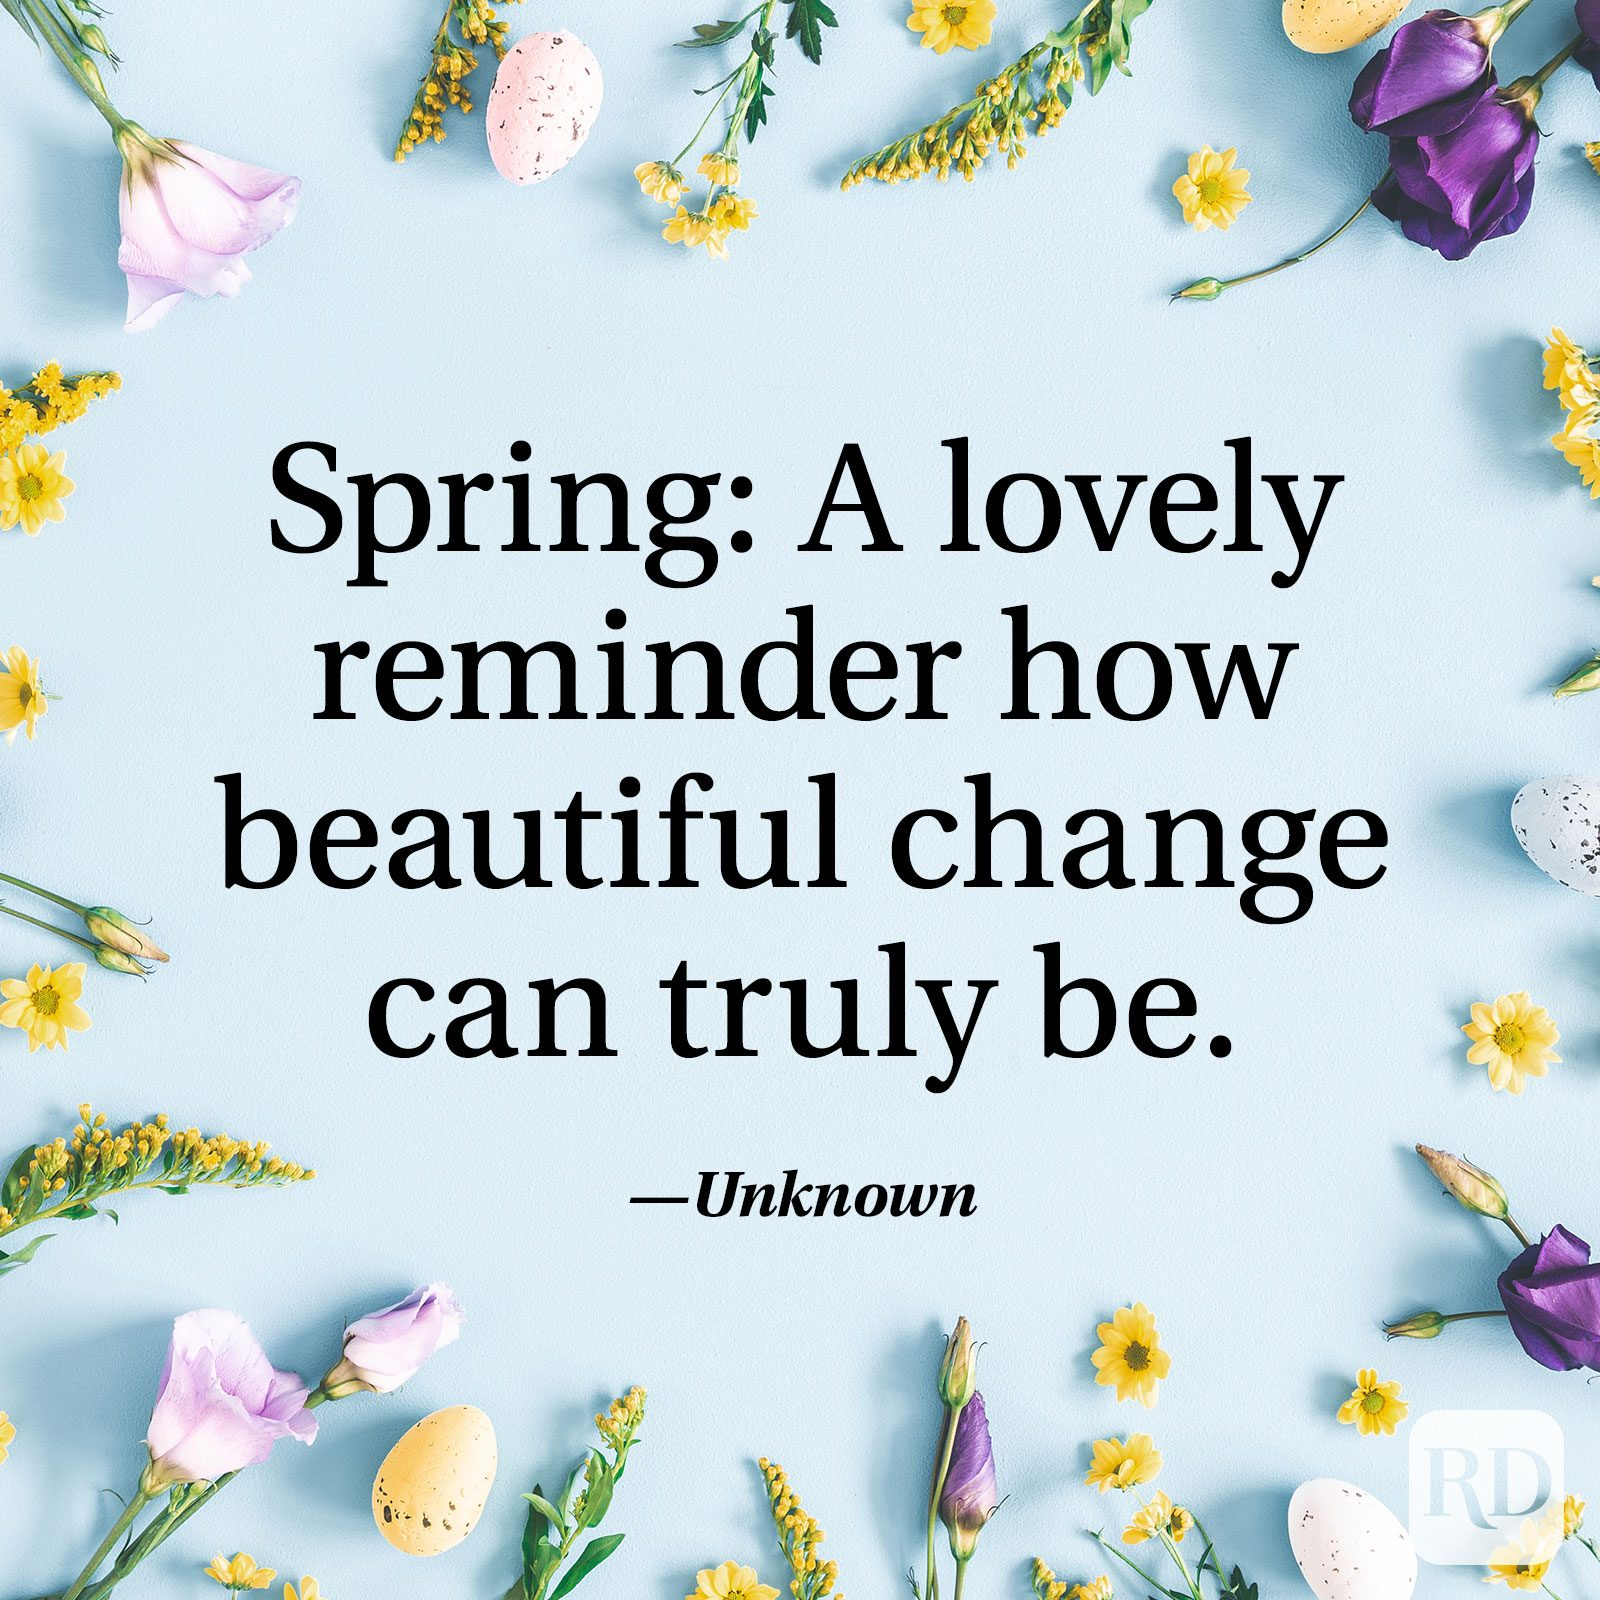 """Spring: A lovely reminder how beautiful change can truly be."" — Unknown"